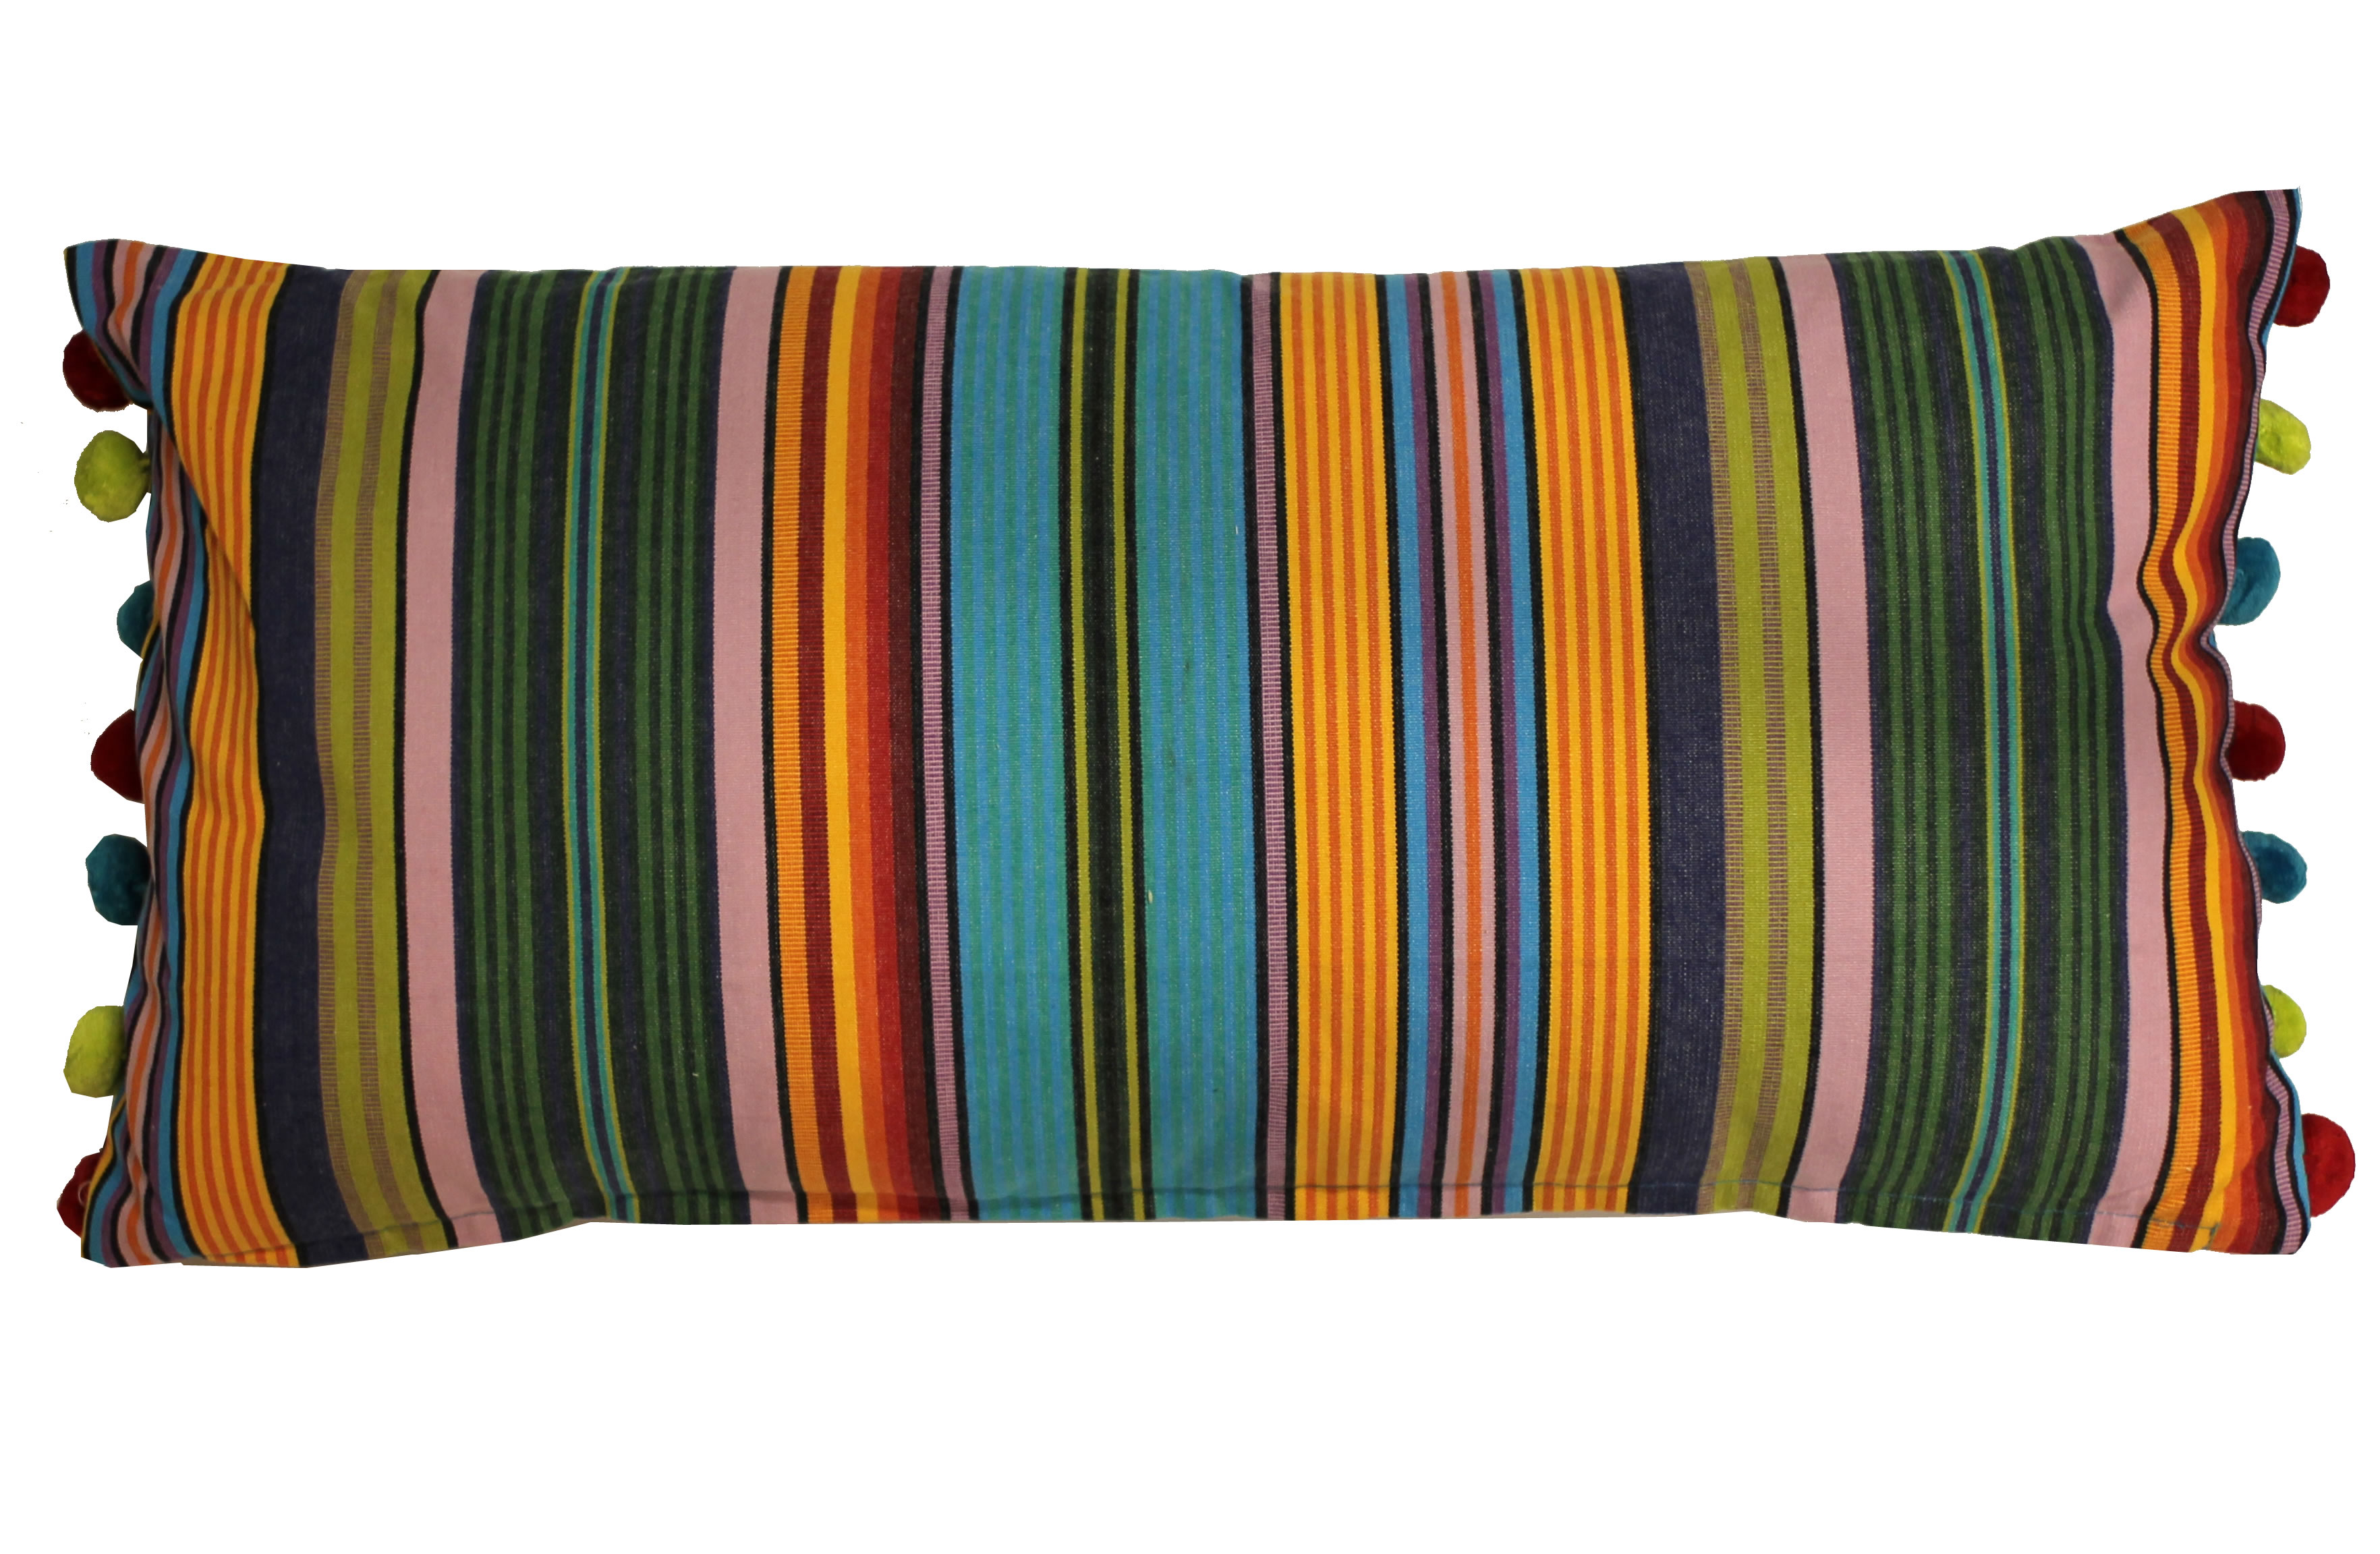 Turquoise Striped Oblong Cushions with Bobble Fringe -Diving Stripe